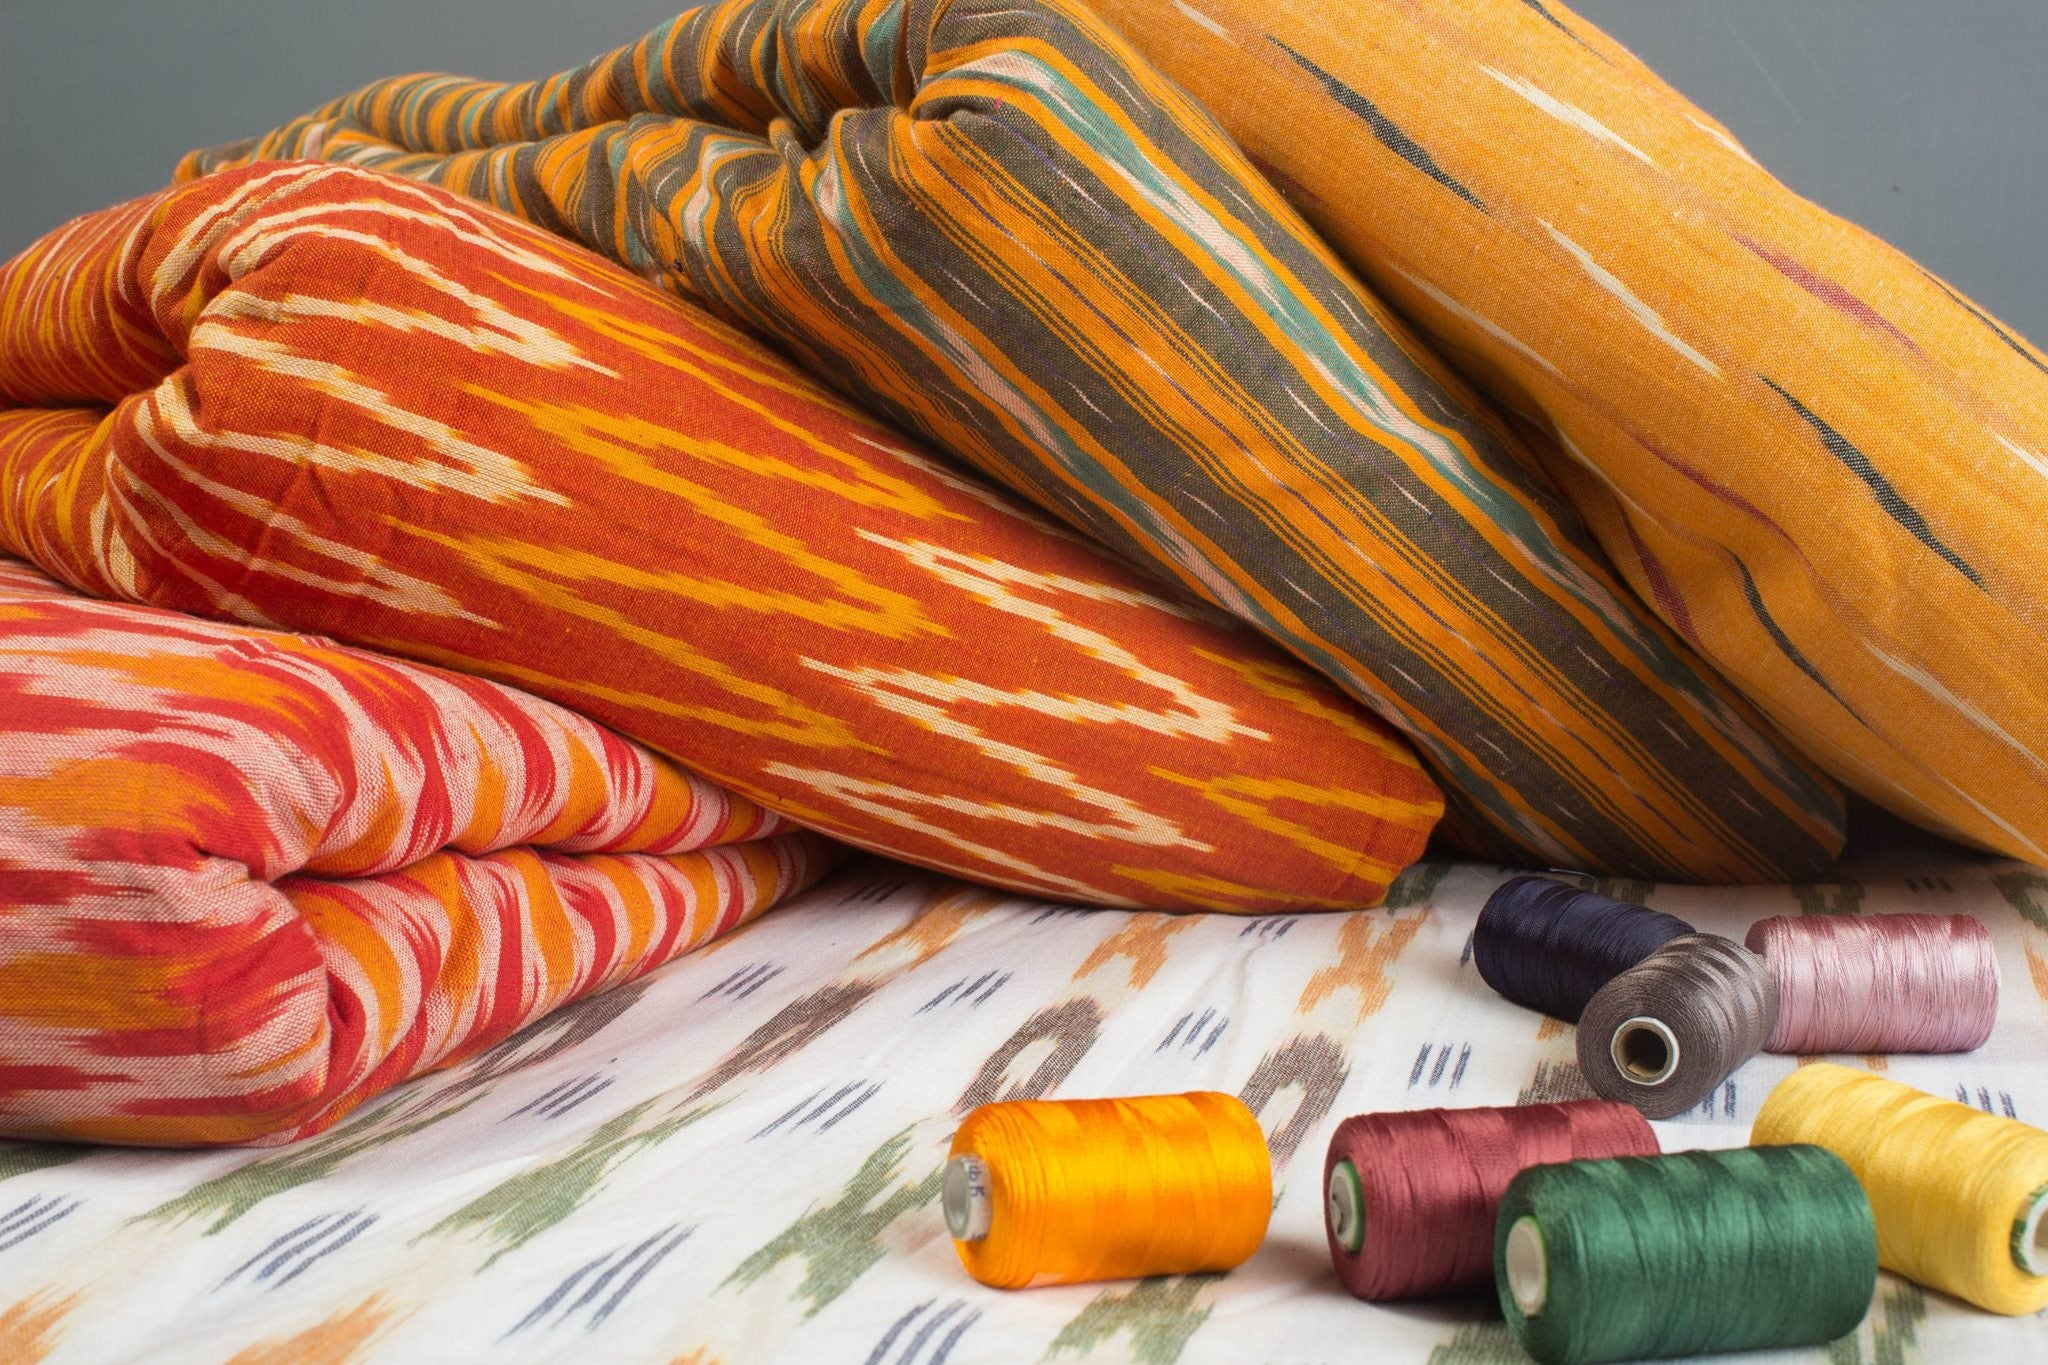 Ikat: Sewn to a Standard of Perfection